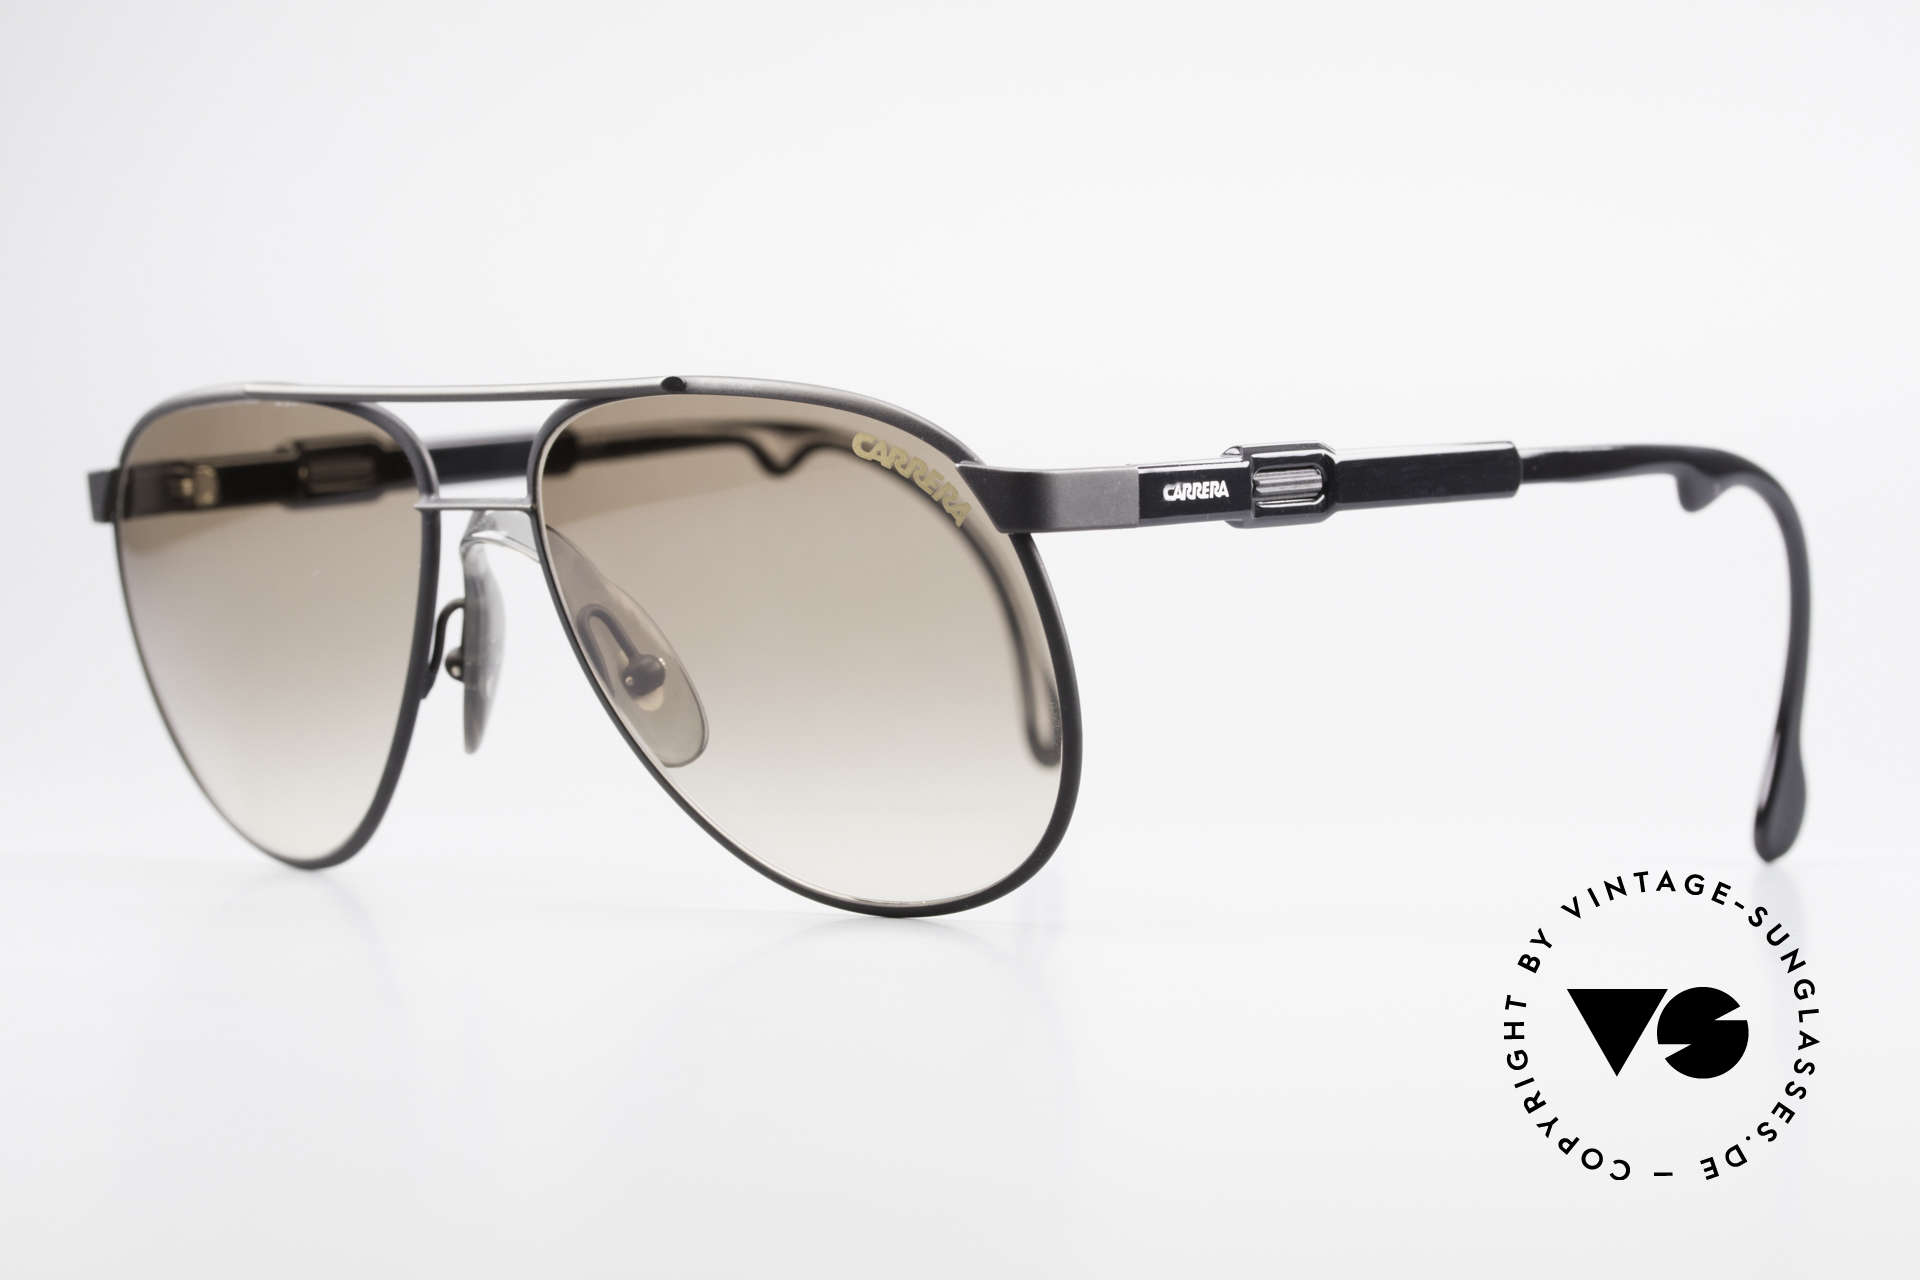 Carrera 5348 Vario Sports Sunglasses 80's, variable temple length, due to Carrera Vario System, Made for Men and Women